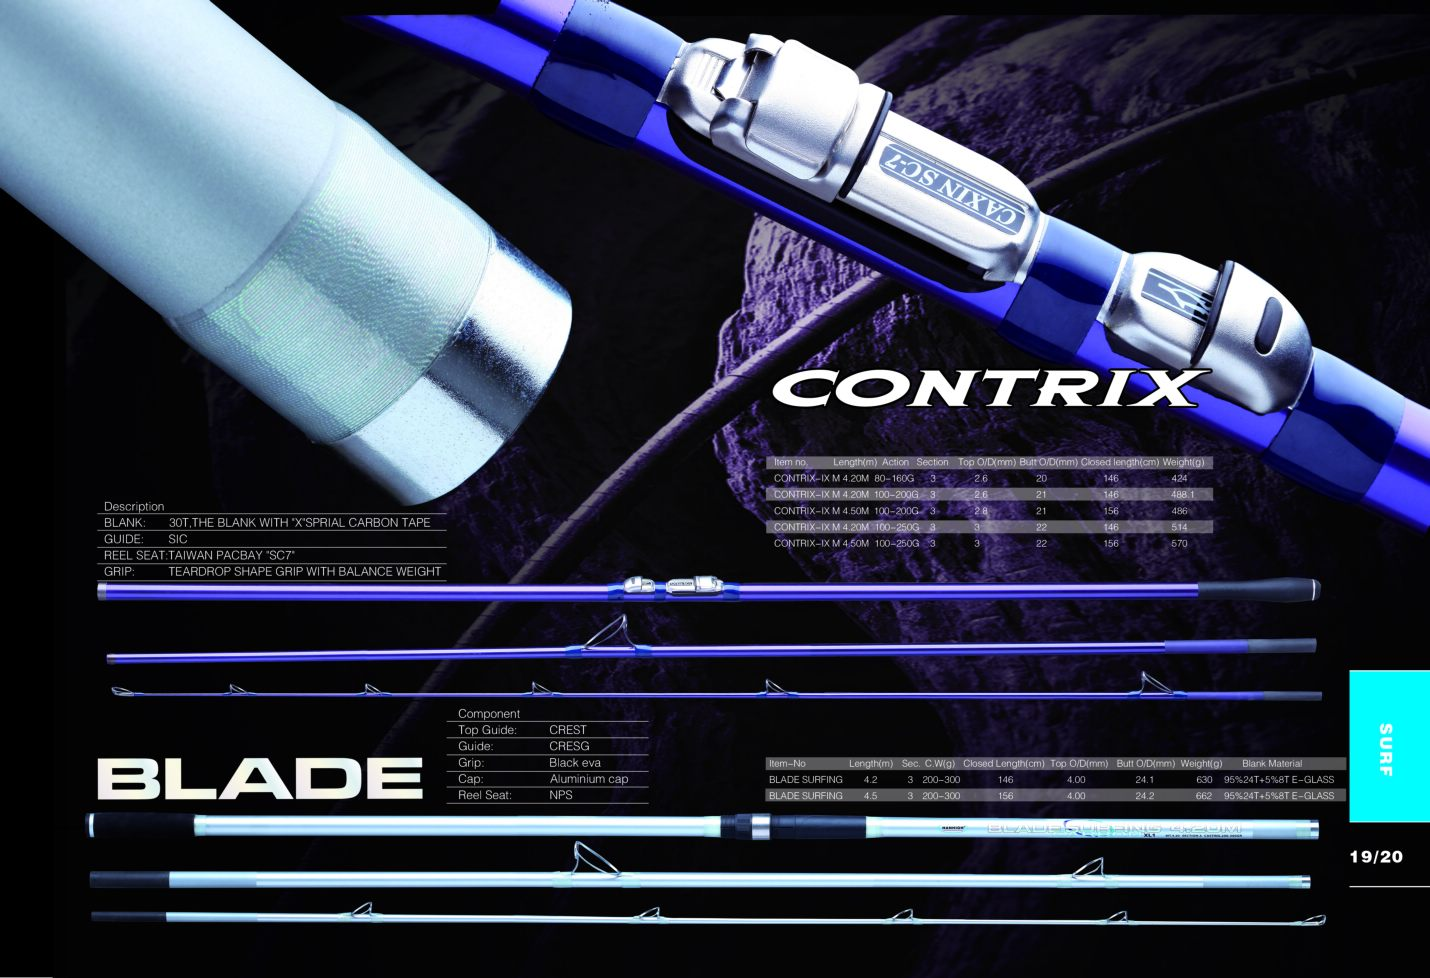 fishing rod p19-20